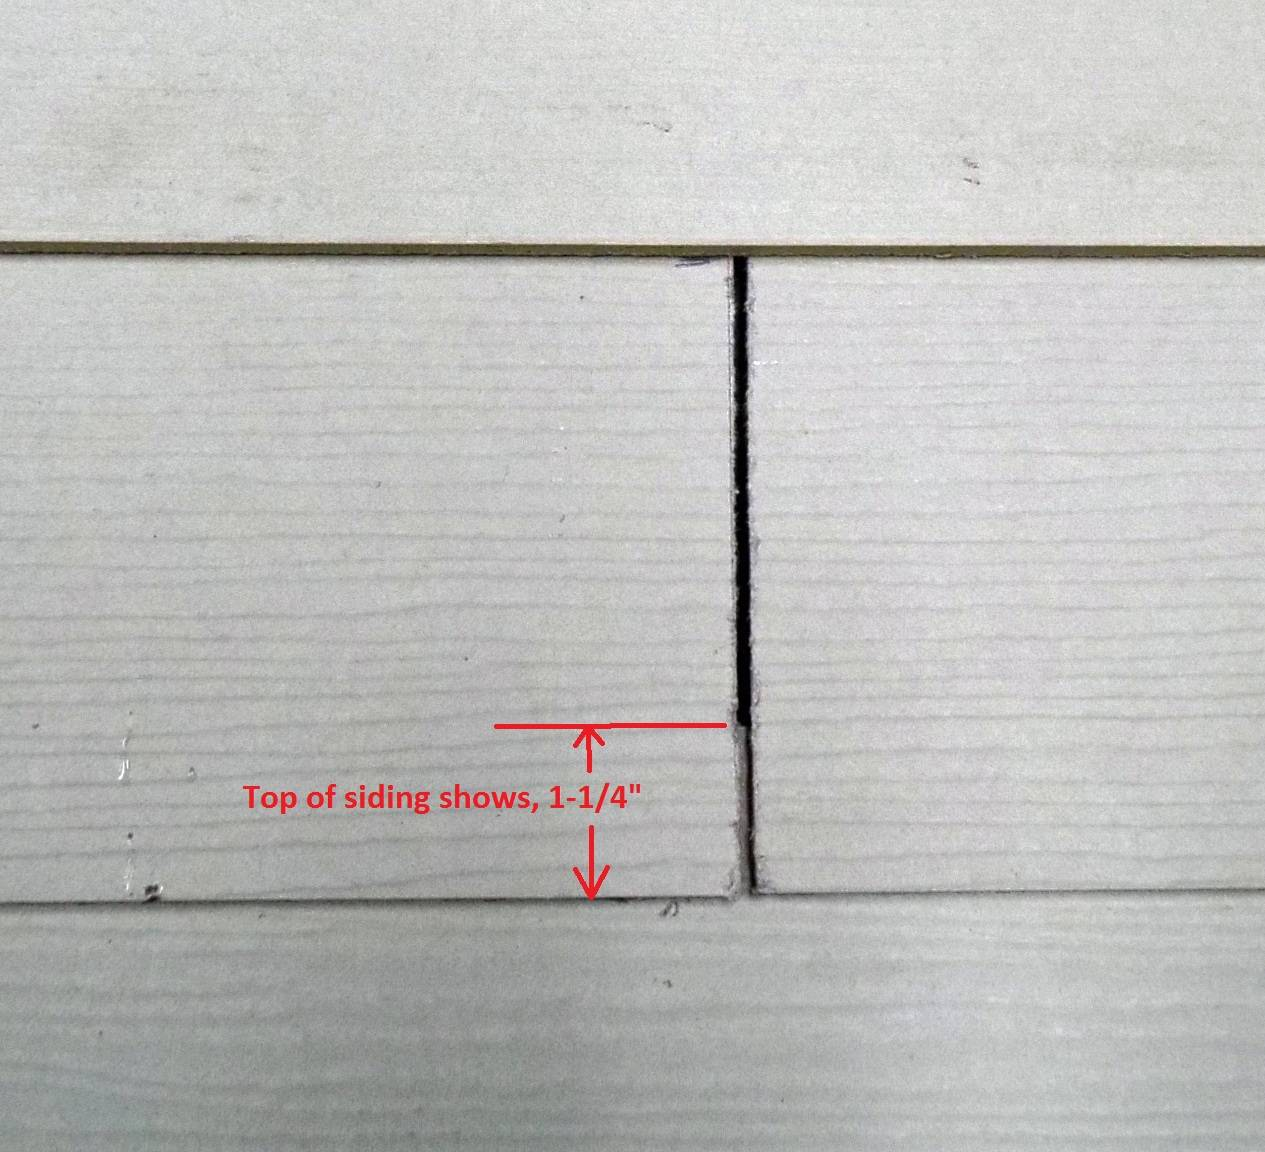 Type Of Nails For Cement Board Siding : How to flash siding butt joints